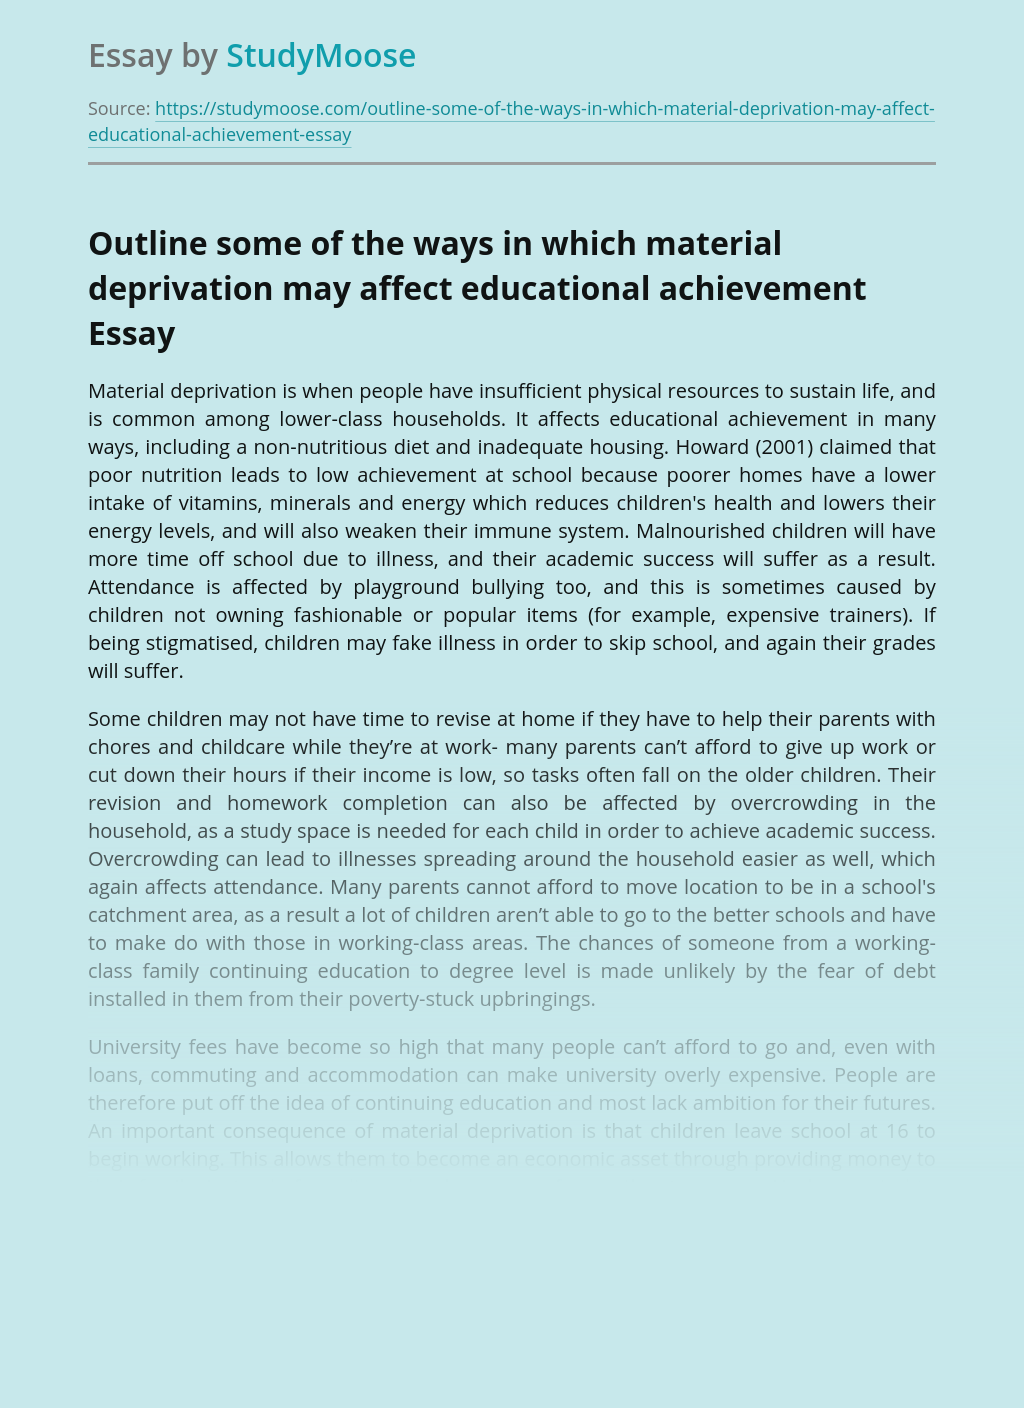 Outline some of the ways in which material deprivation may affect educational achievement